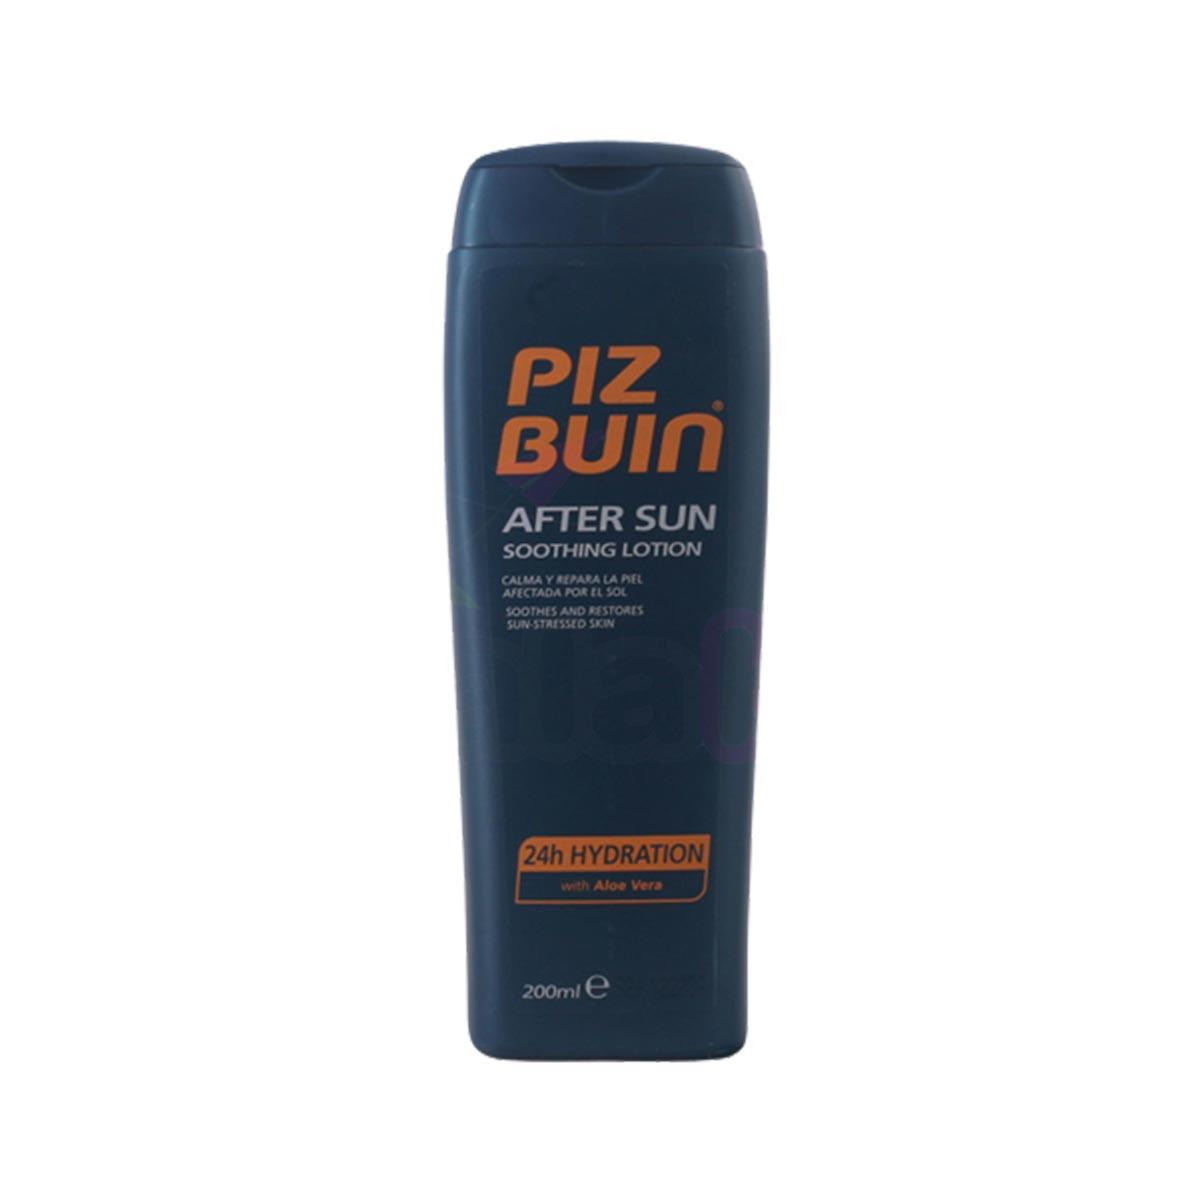 Piz buin After Sun Soothing Lotion 24 Hydration With Aloe Vera 200 ml